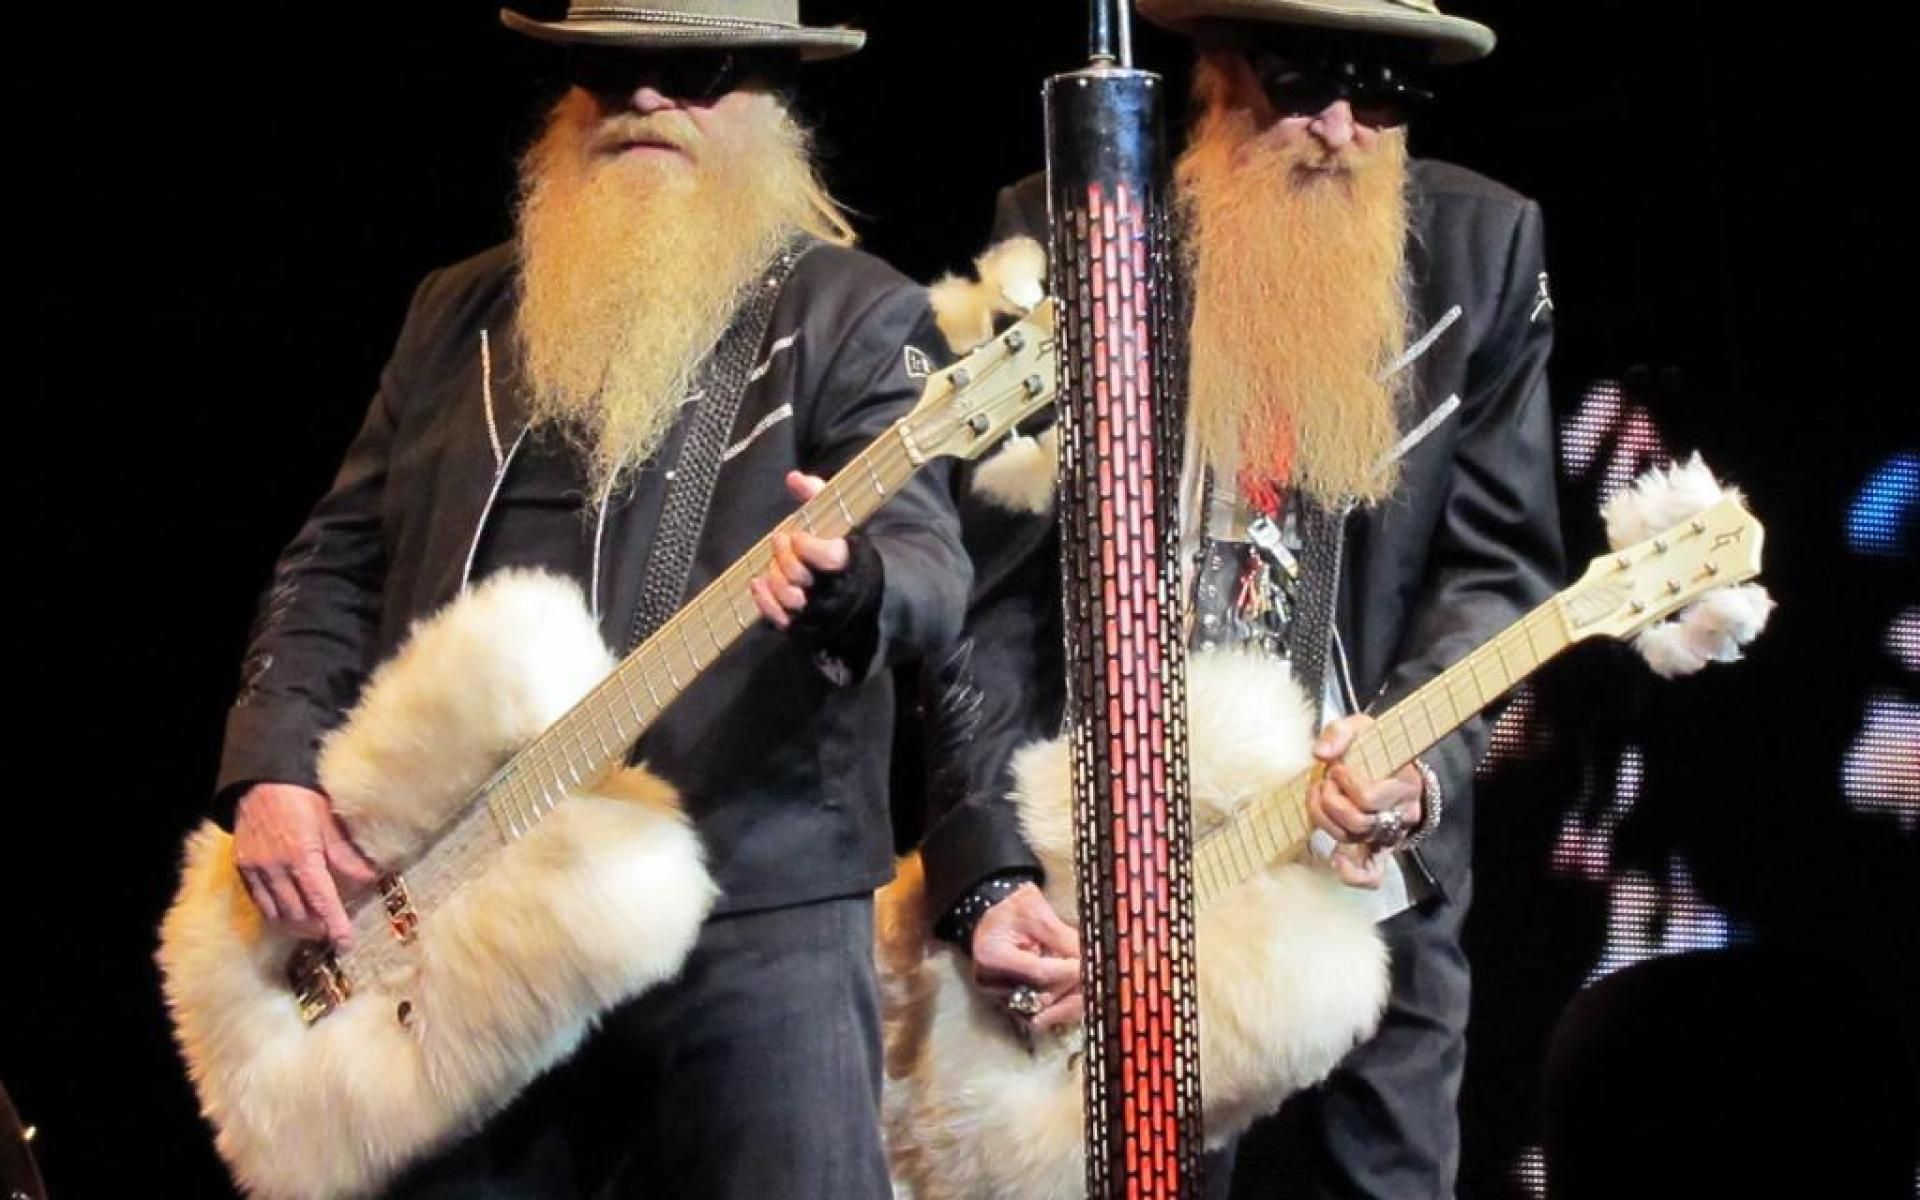 Zz top iphone wallpaper - Zz Top Wallpaper 96941 Hd Wallpapers Wallpapersinhq Pw